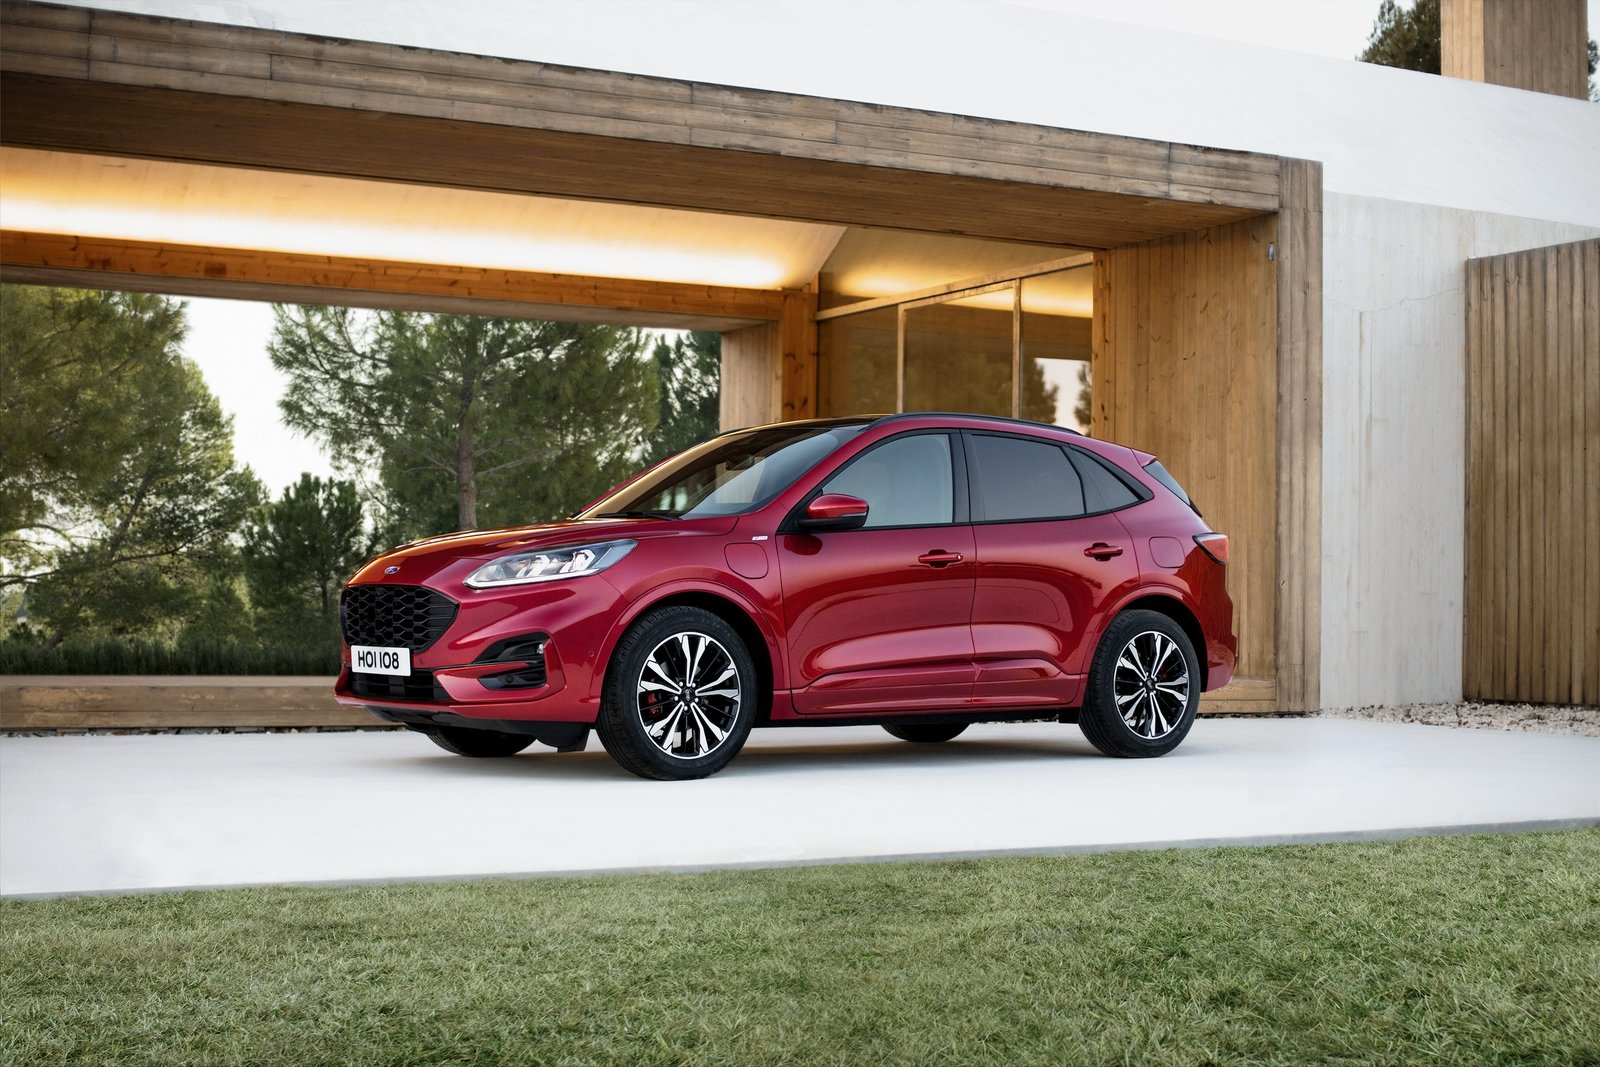 2020 Ford Kuga Revealed With Range Of Electrified ...